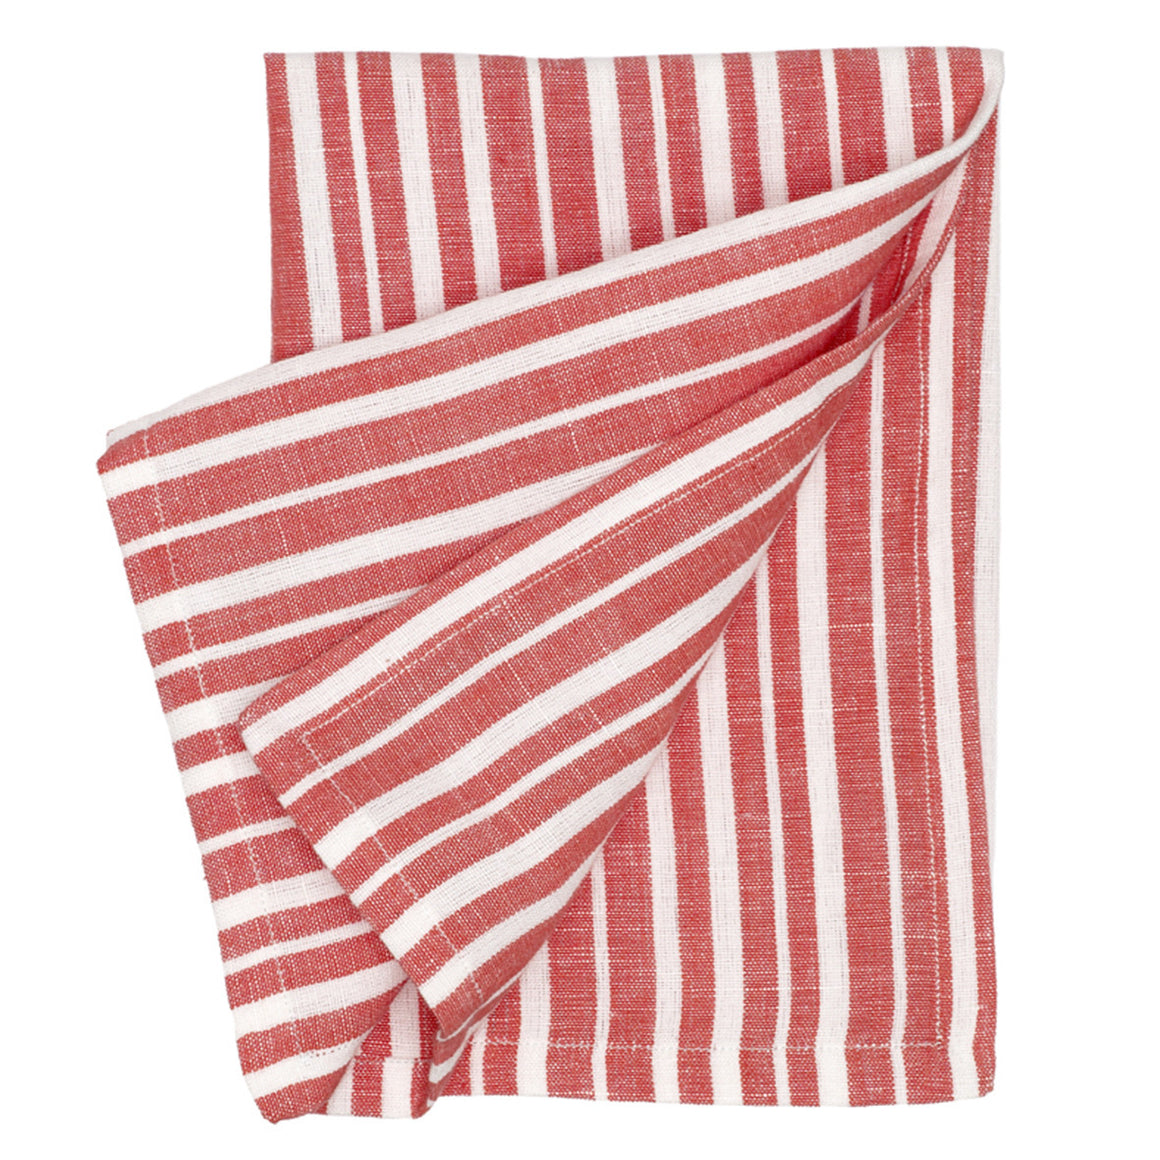 Palermo Ticking Stripe Cotton Linen Napkin in Geranium Red